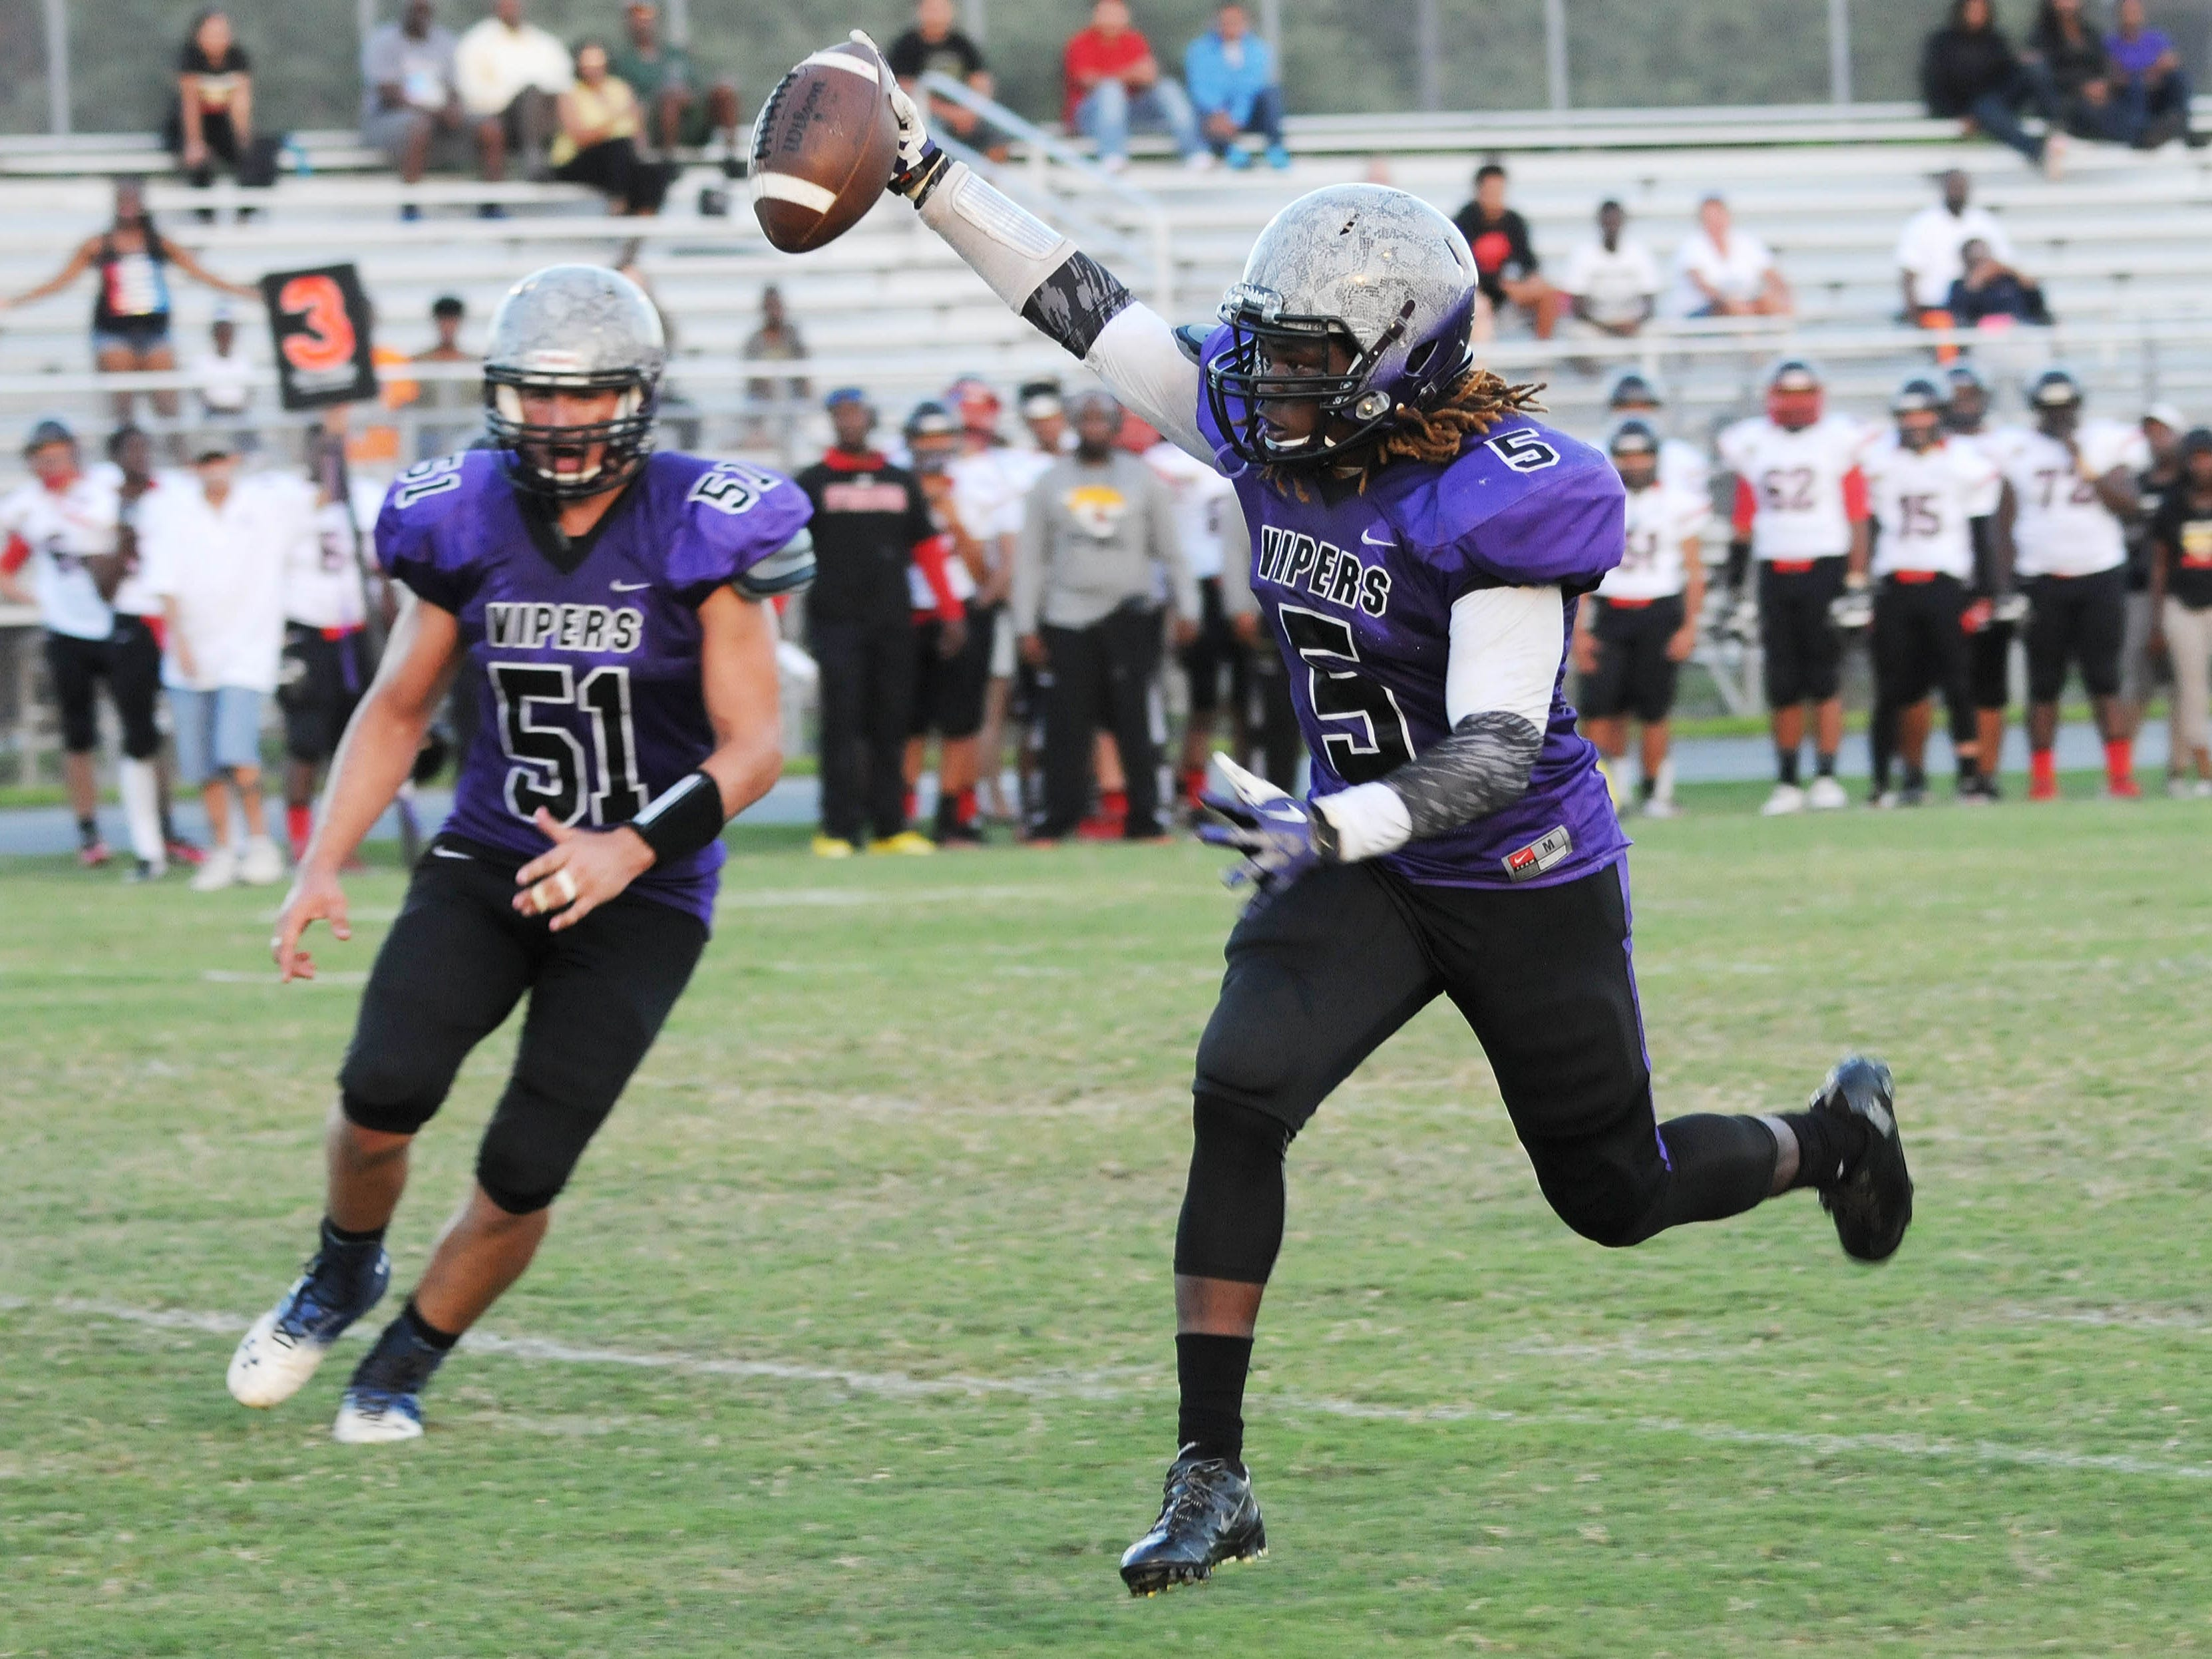 Corn Fulton of Space Coast scores a touchdown during Tuesday's spring football game against Port St. Lucie.